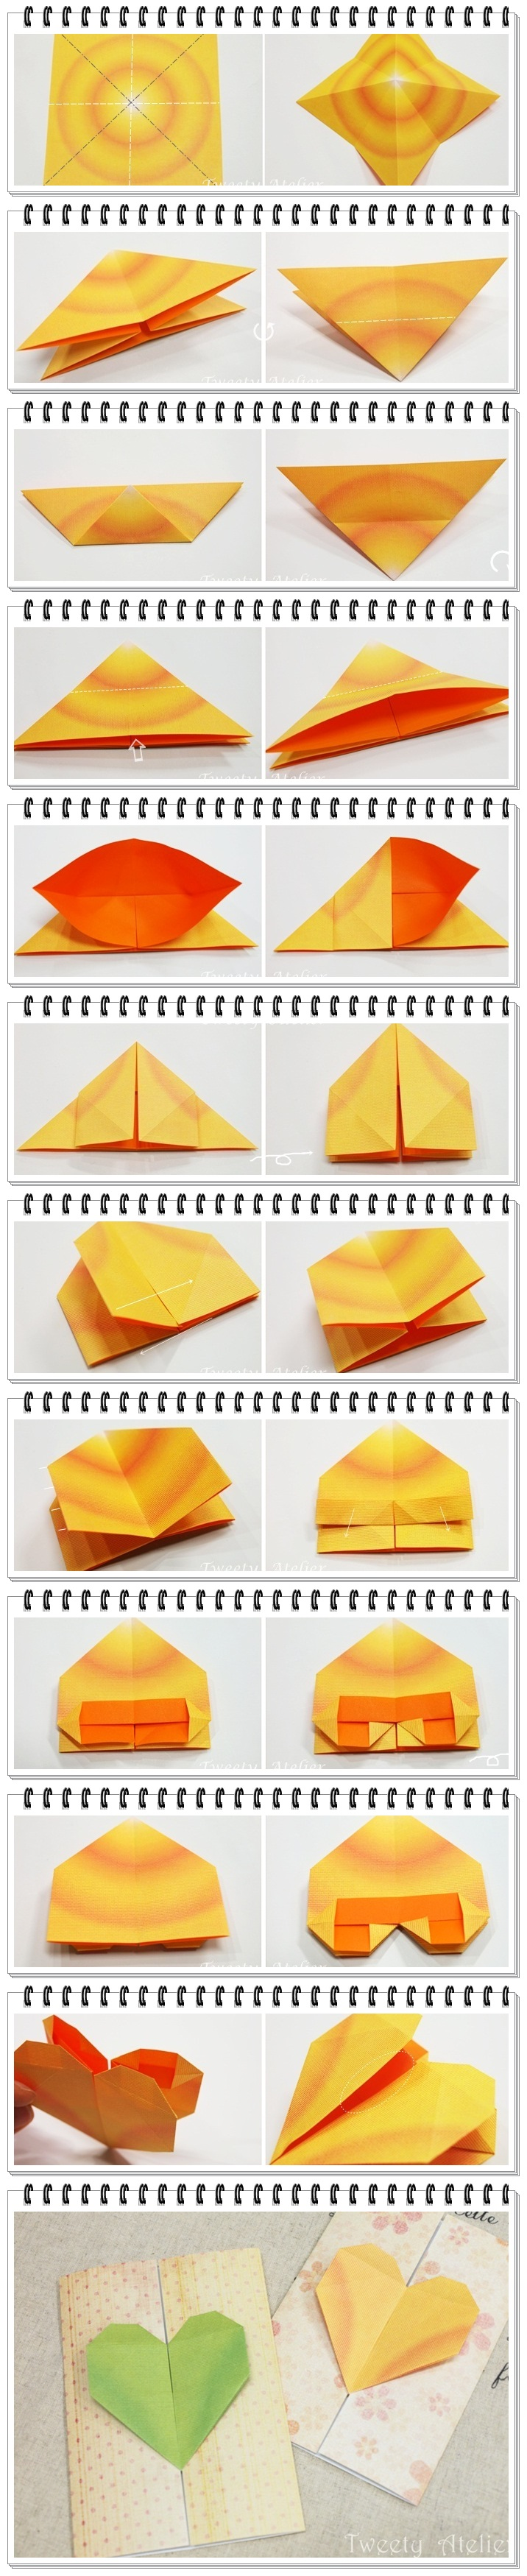 Origami-Making-paper-heart